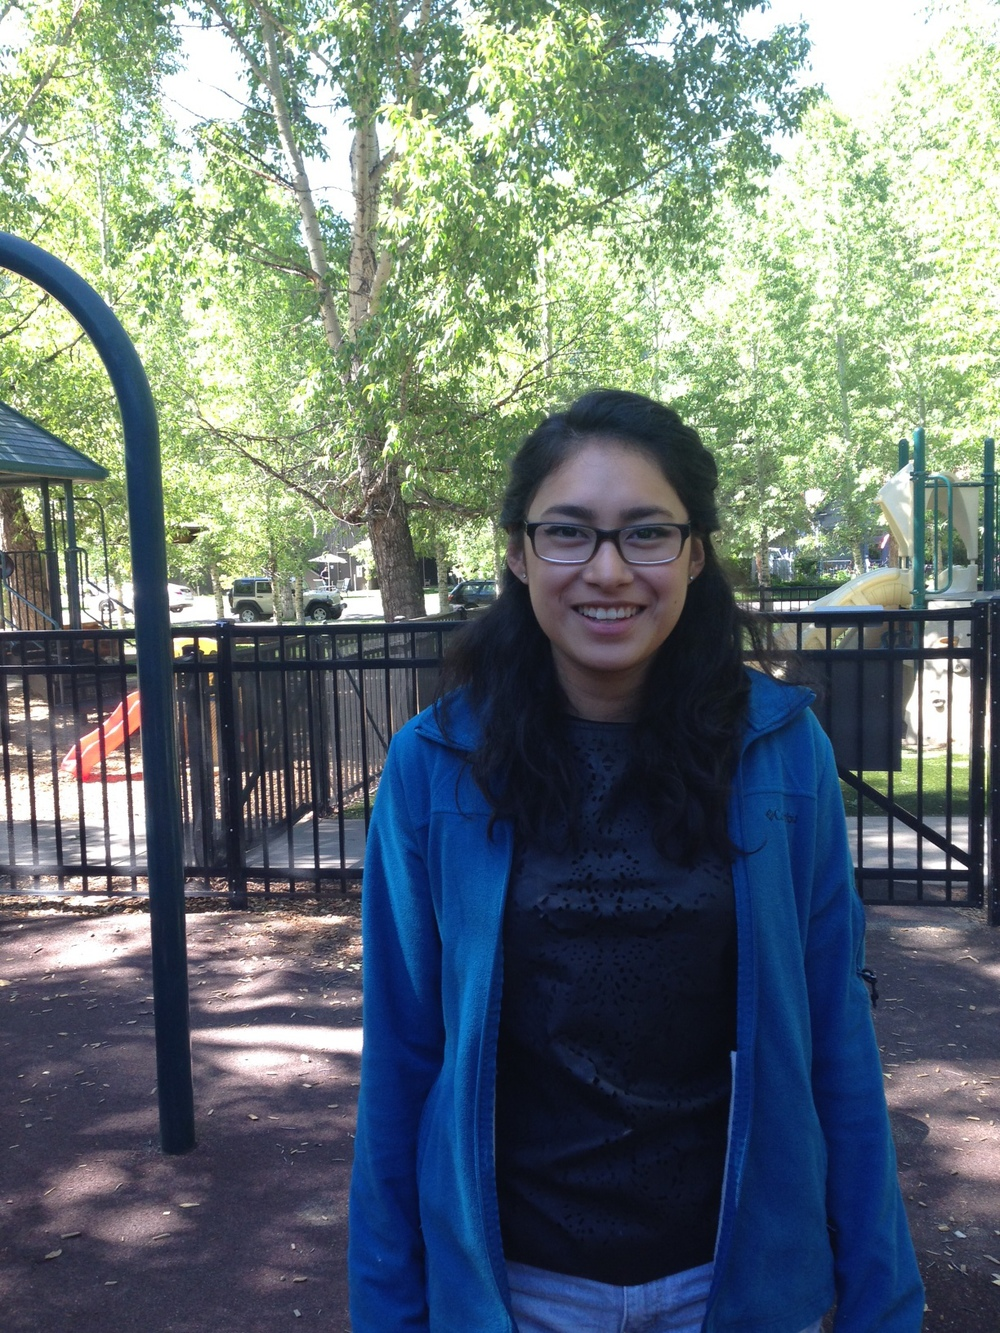 Hi! My name is Evelyn Dominguez. I was born in California but I've lived in Colorado for most of my life. So far I've been working at the Early Learning Center for the whirl week of July and I love it. It's extremely fun watching every kid learn and grow.